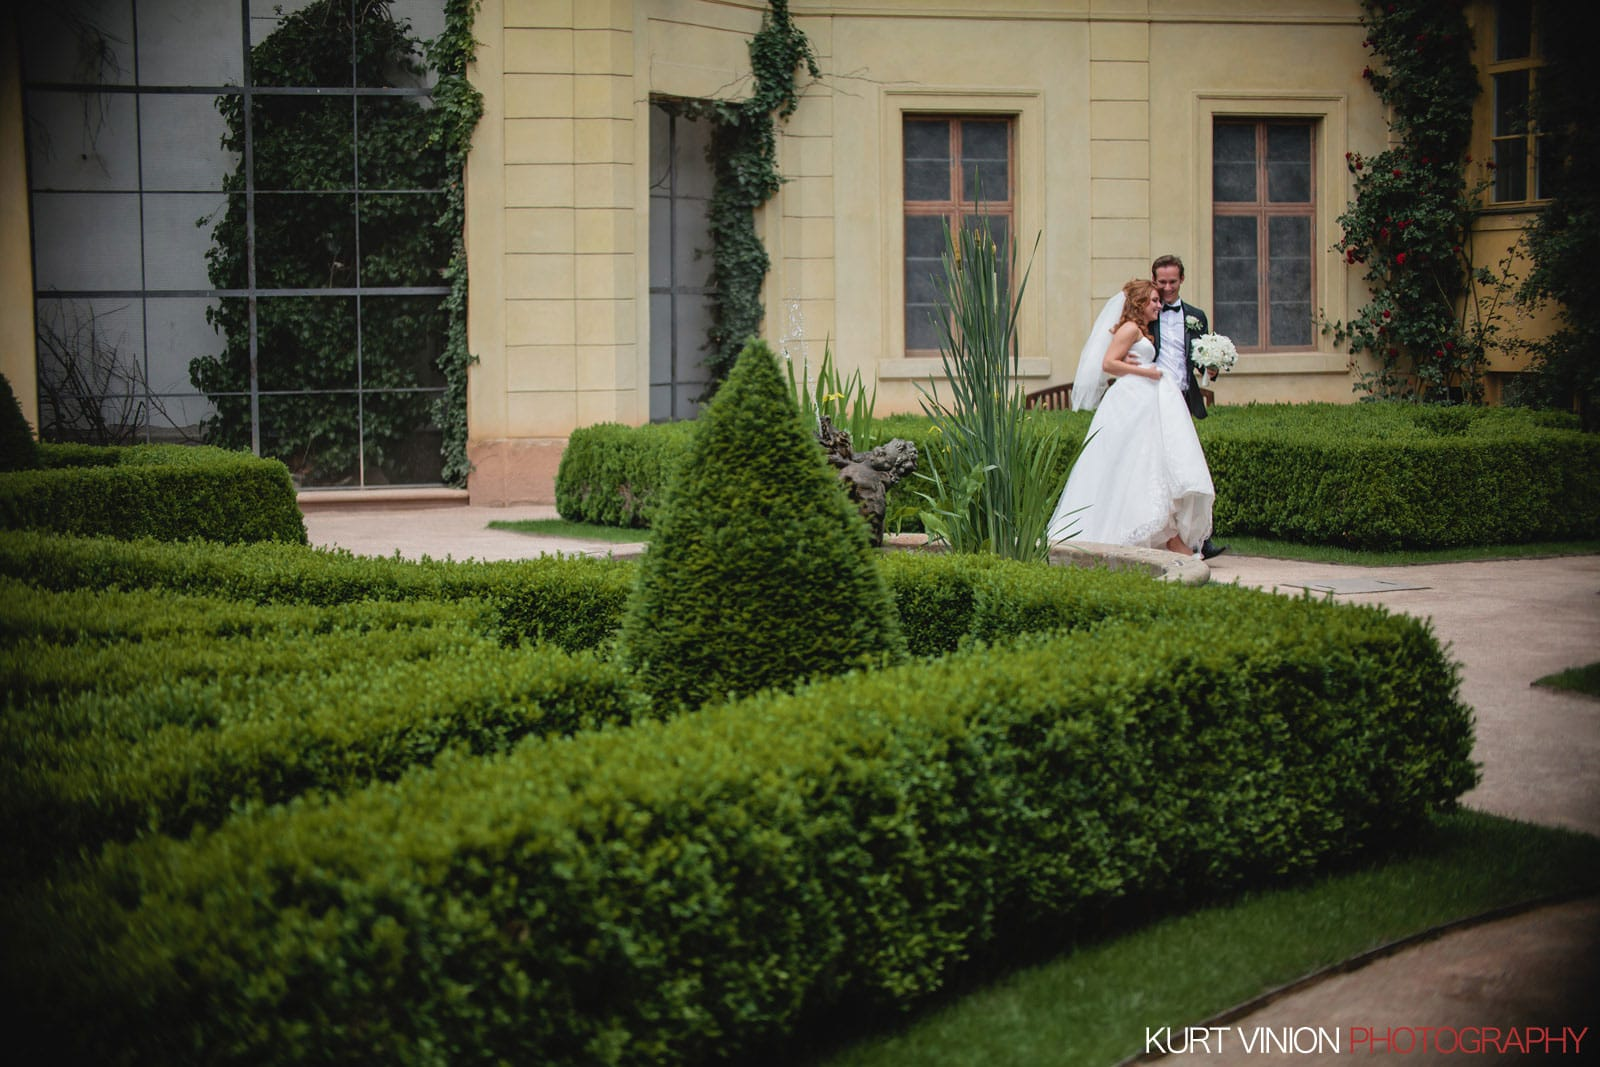 Elopement wedding Prague / Vrtbovska Garden / Polya & Dirk wedding photos at Vrtba